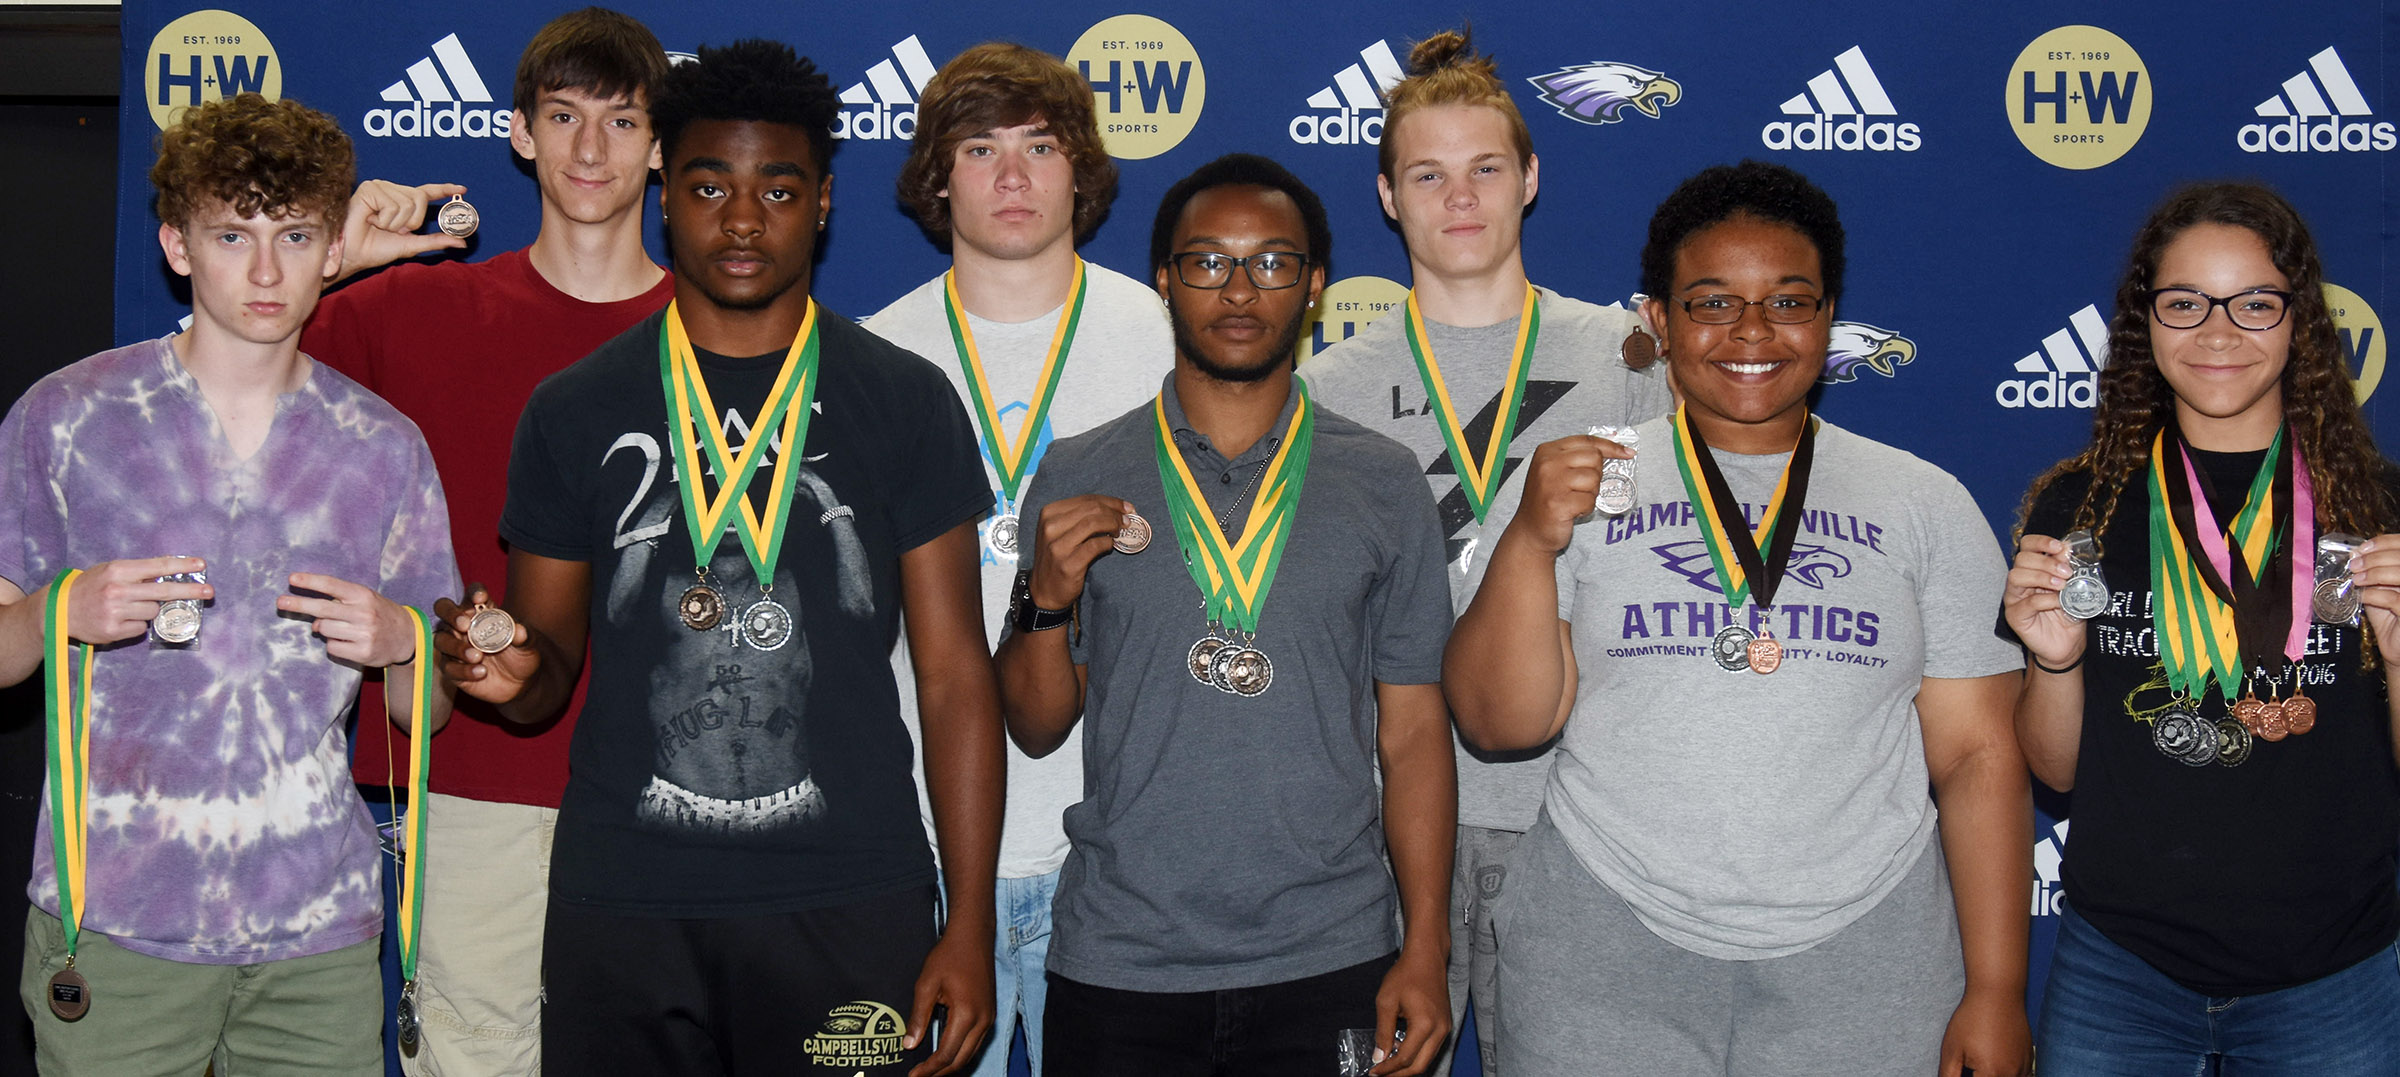 CHS track team members who medaled at the region and other recent meets are, from left, front, juniors Jackson Hinton, Charlie Pettigrew, Daesean Vancleave and Natalie Caldwell and sophomore Taliyah Hazelwood. Back, juniors Evan McAninch, Tristan Johnson and Joe Pipes.